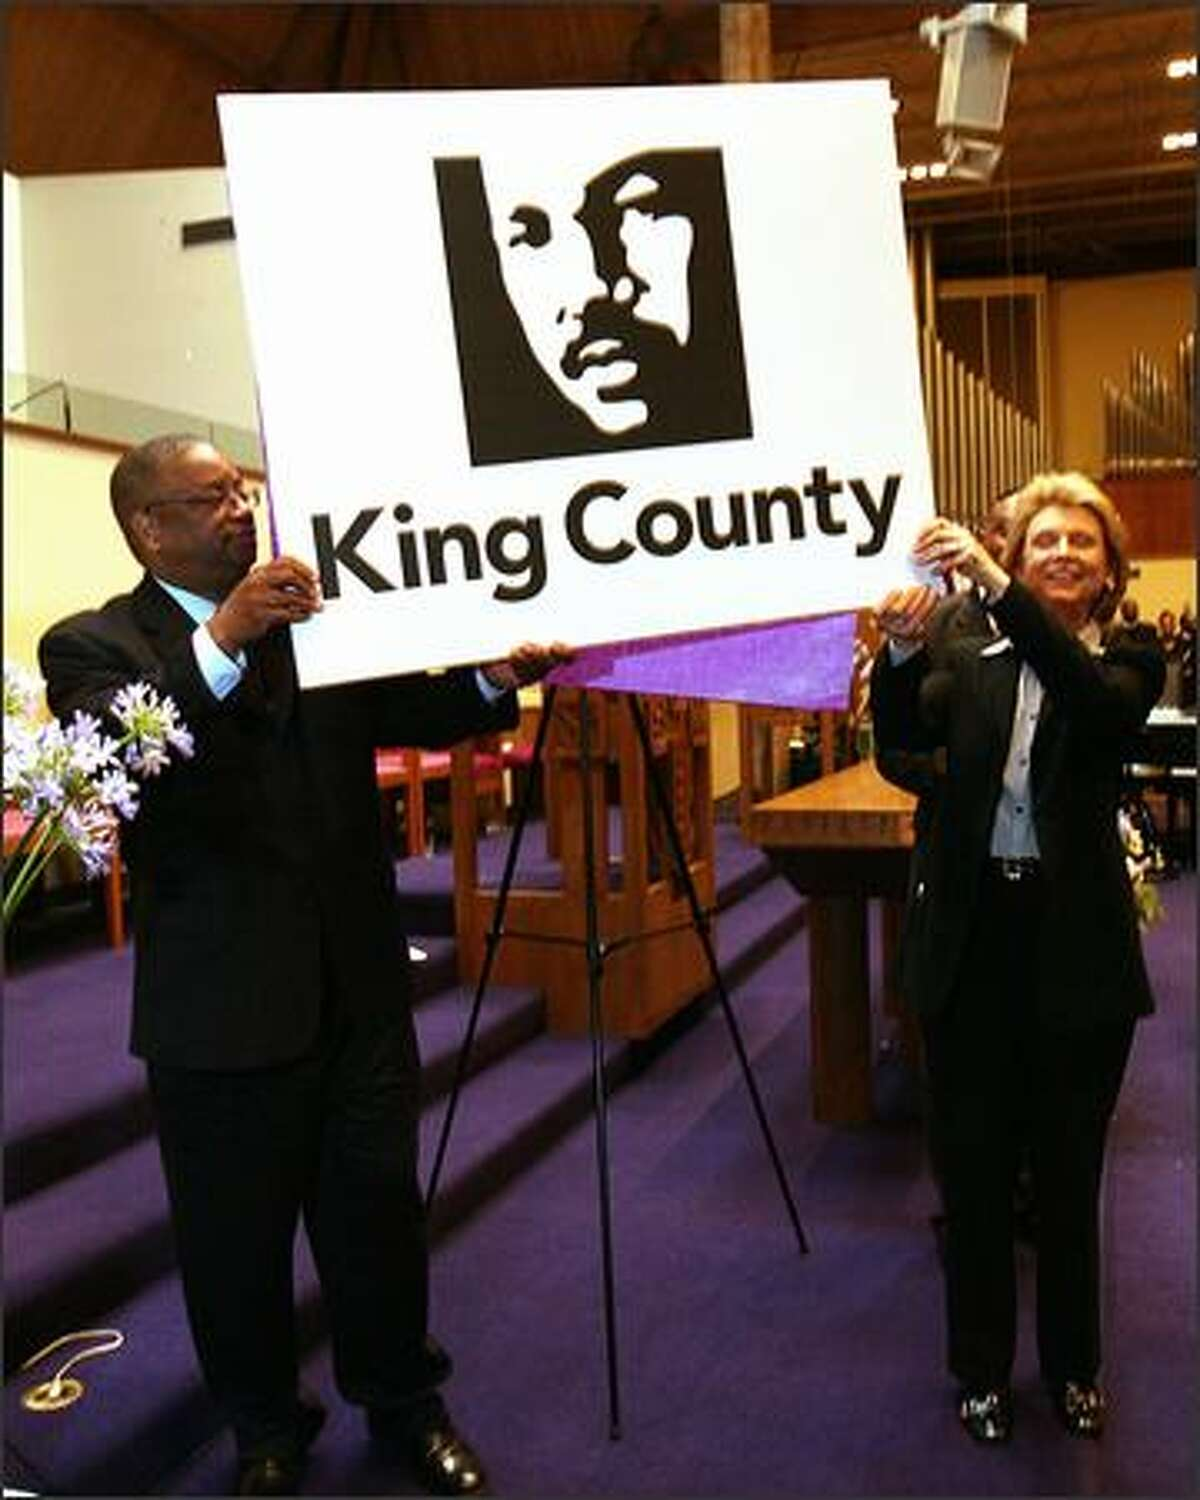 King County Council Chairman Larry Gossett and Gov. Chris Gregoire show the county's proposed logo of the Rev. Martin Luther King Jr. outside Mount Zion Baptist Church in Seattle on Sunday.